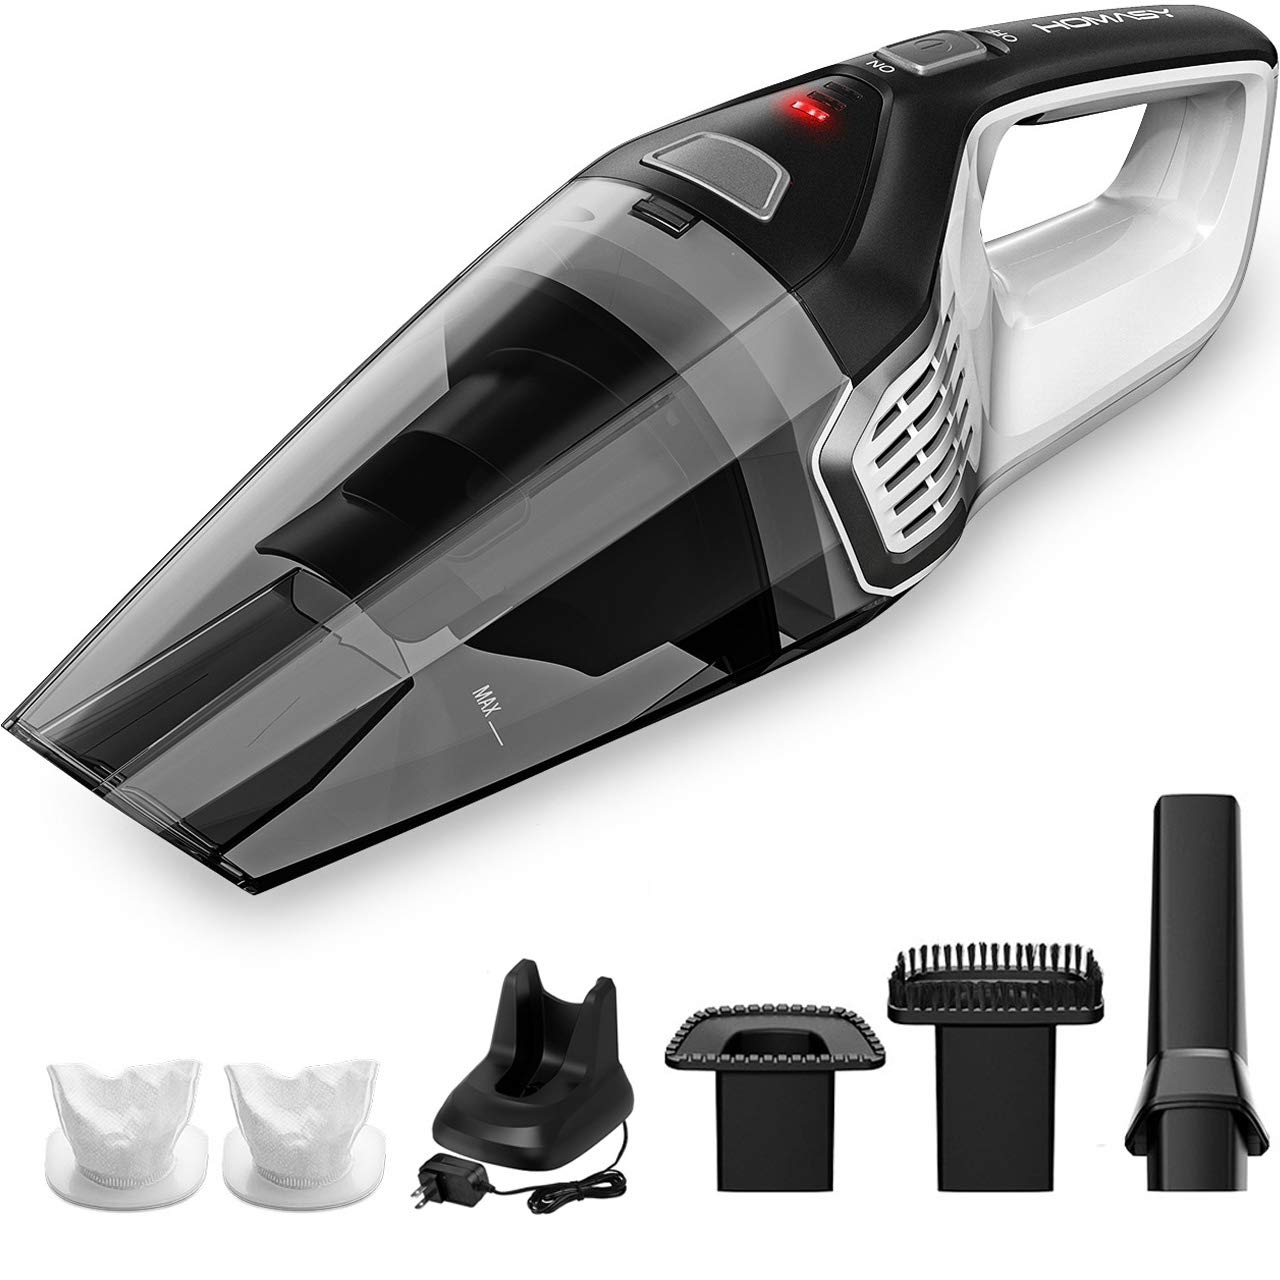 Homasy Portable Handheld Vacuum Cleaner Cordless, Powerful Cyclonic Suction Vacuum Cleaner, 14.8V Lithium with Quick Charge Tech, Wet Dry Lightweight Hand Vac by Homasy